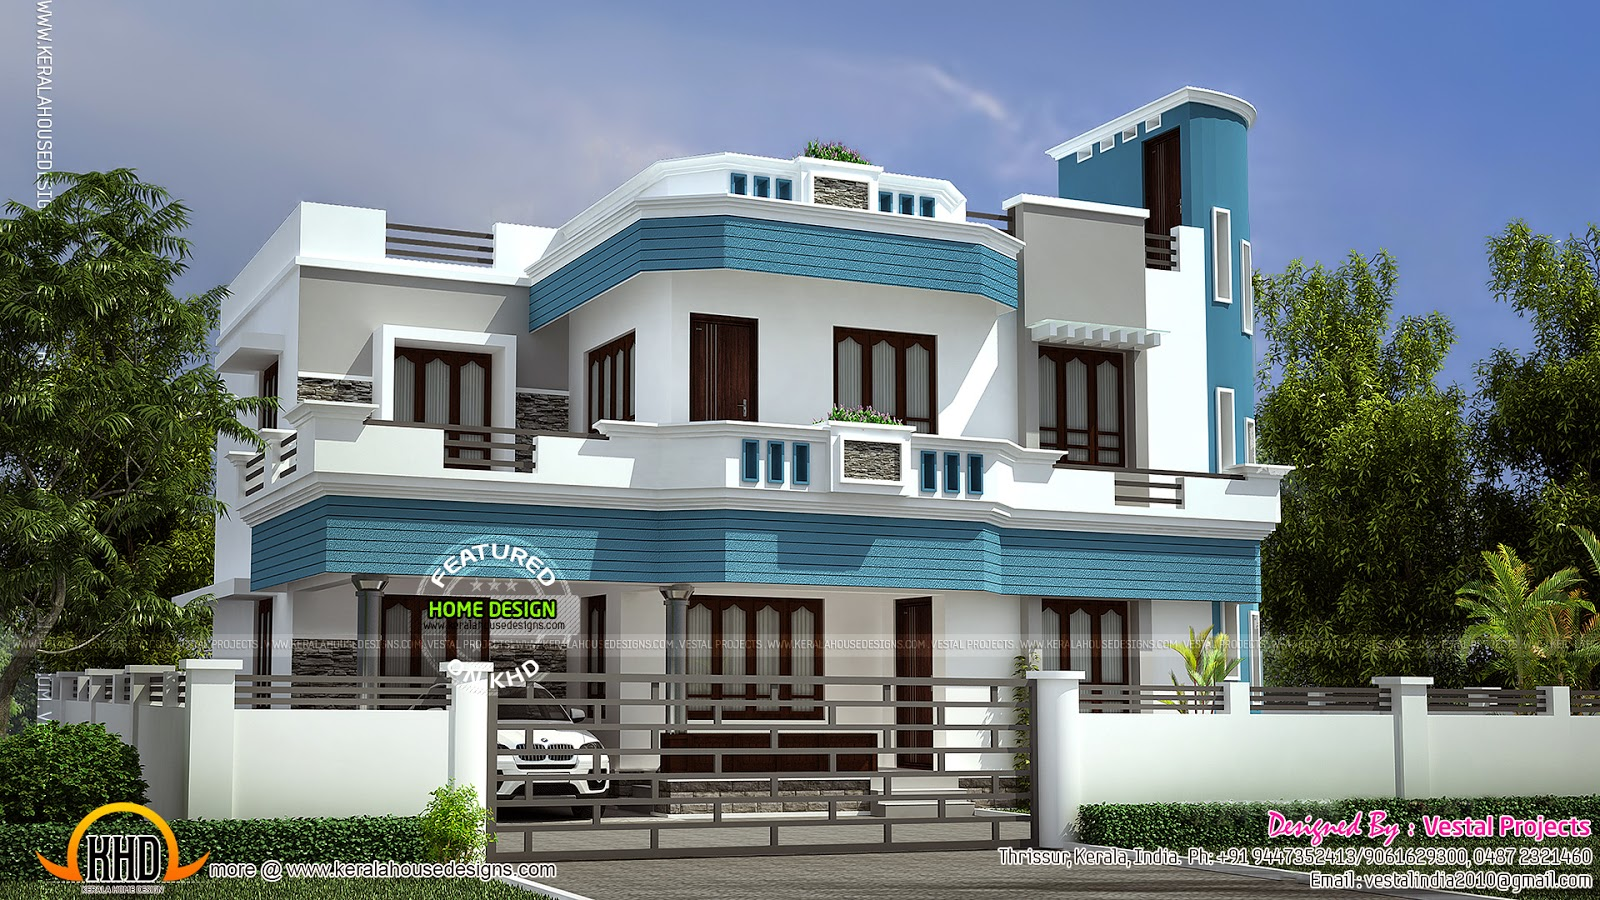 Home Design Pictures Of Awesome House By Vestal Projects Kerala Home Design And